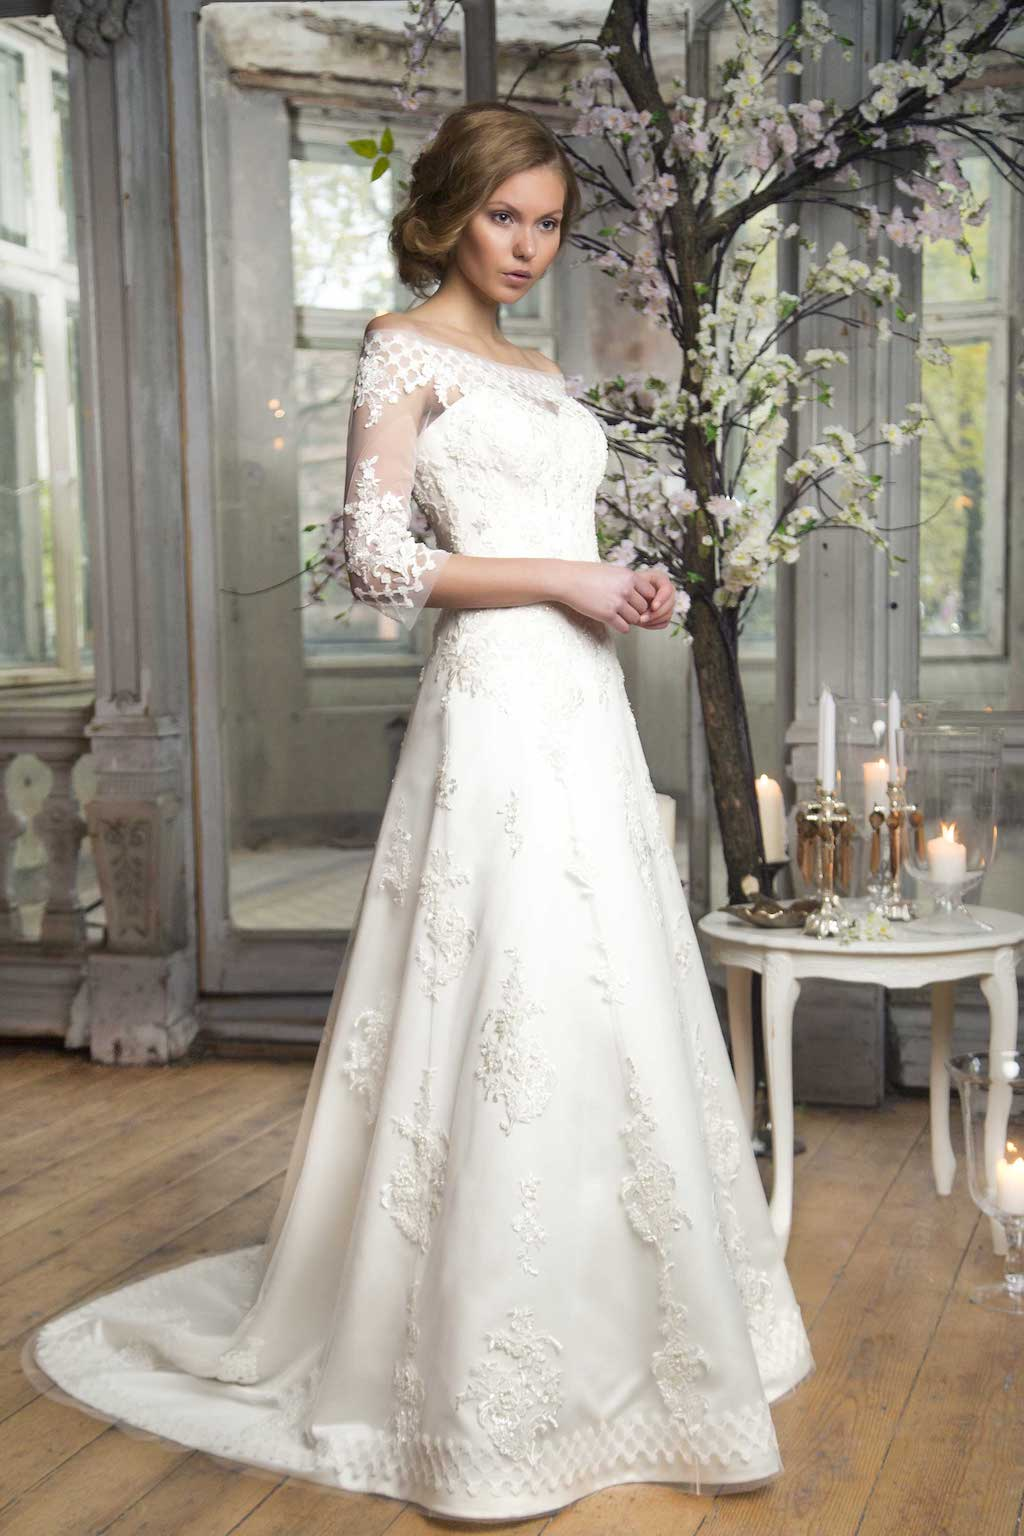 To Create A Classic Bridal Look Is Necessary Consider Only One Rule Wedding Dress Should Be Puffy Moreover Lace Ball Gown Cannot